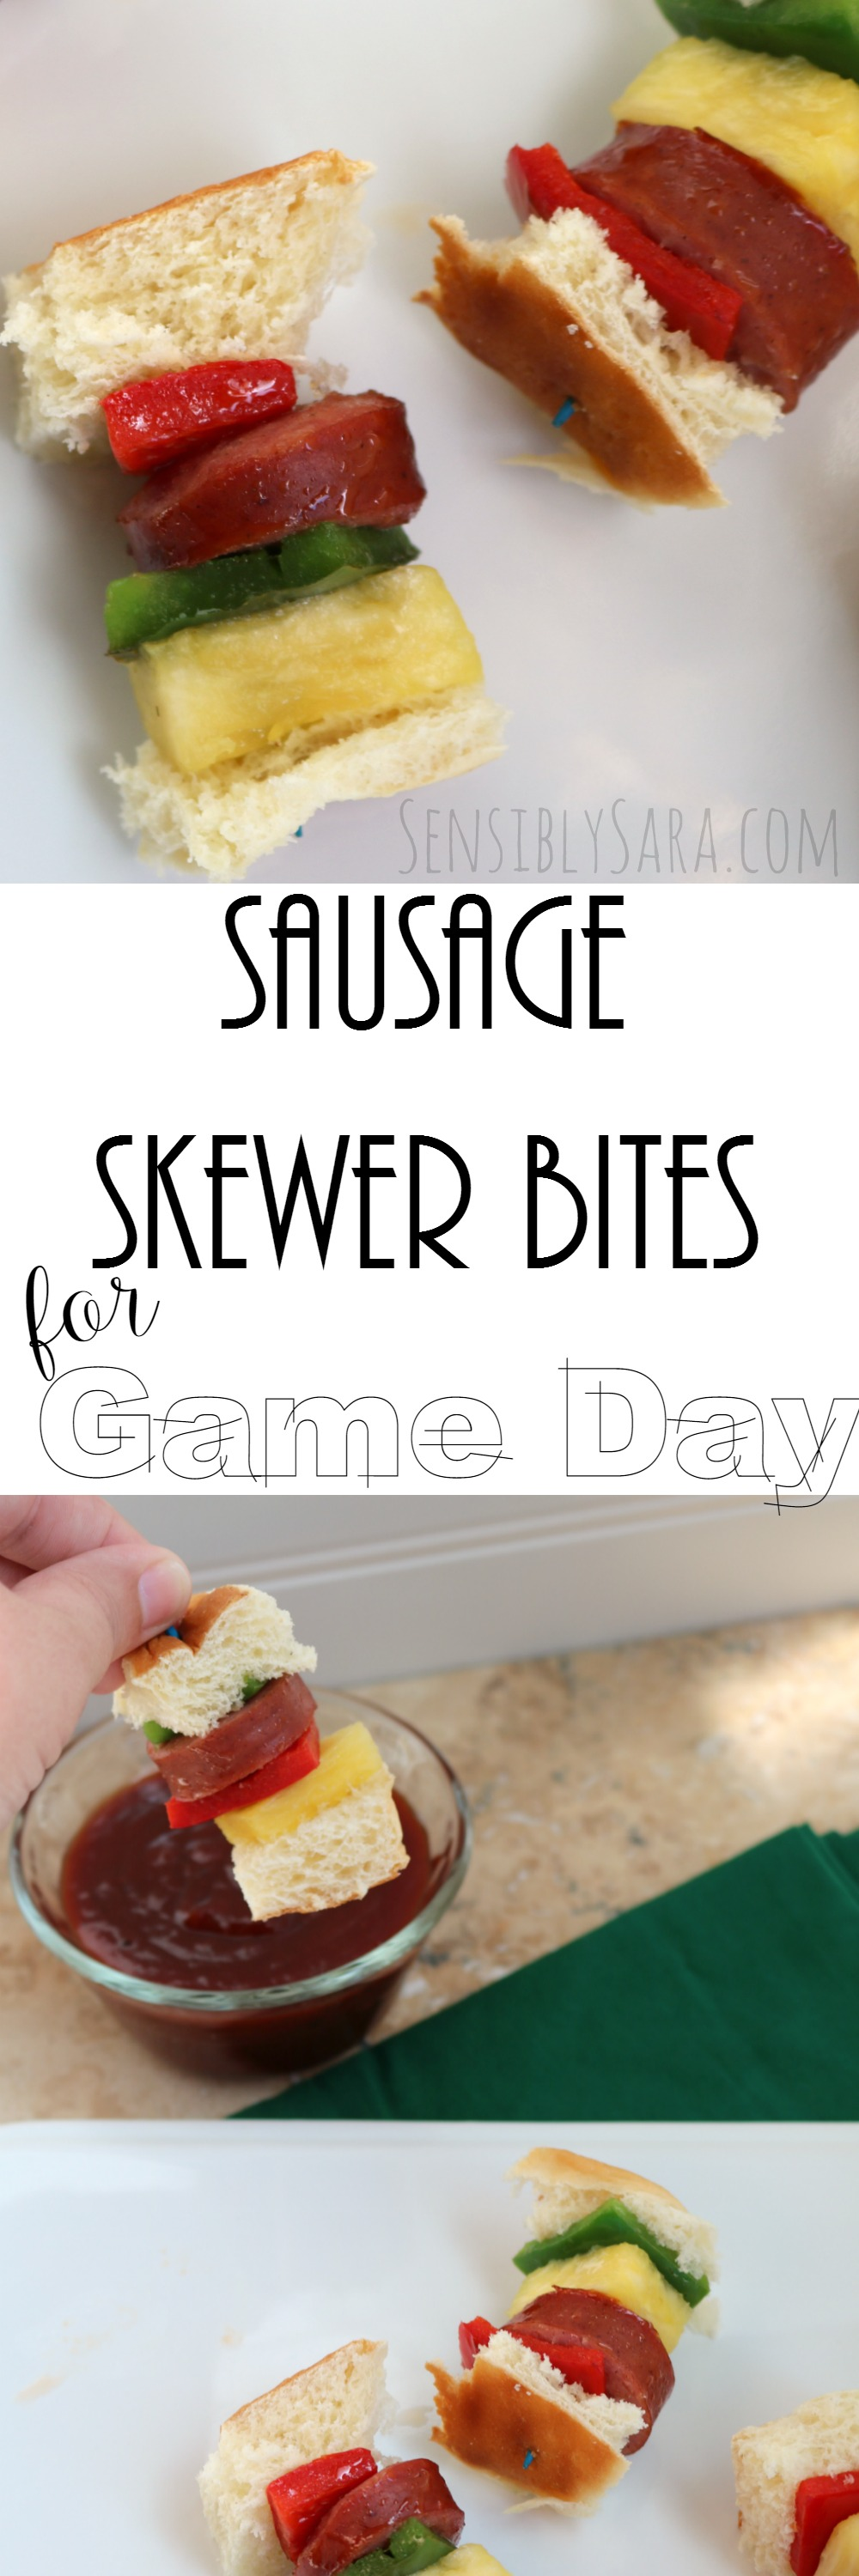 Sausage Skewer Bites with KING'S HAWAIIAN® | SensiblySara.com